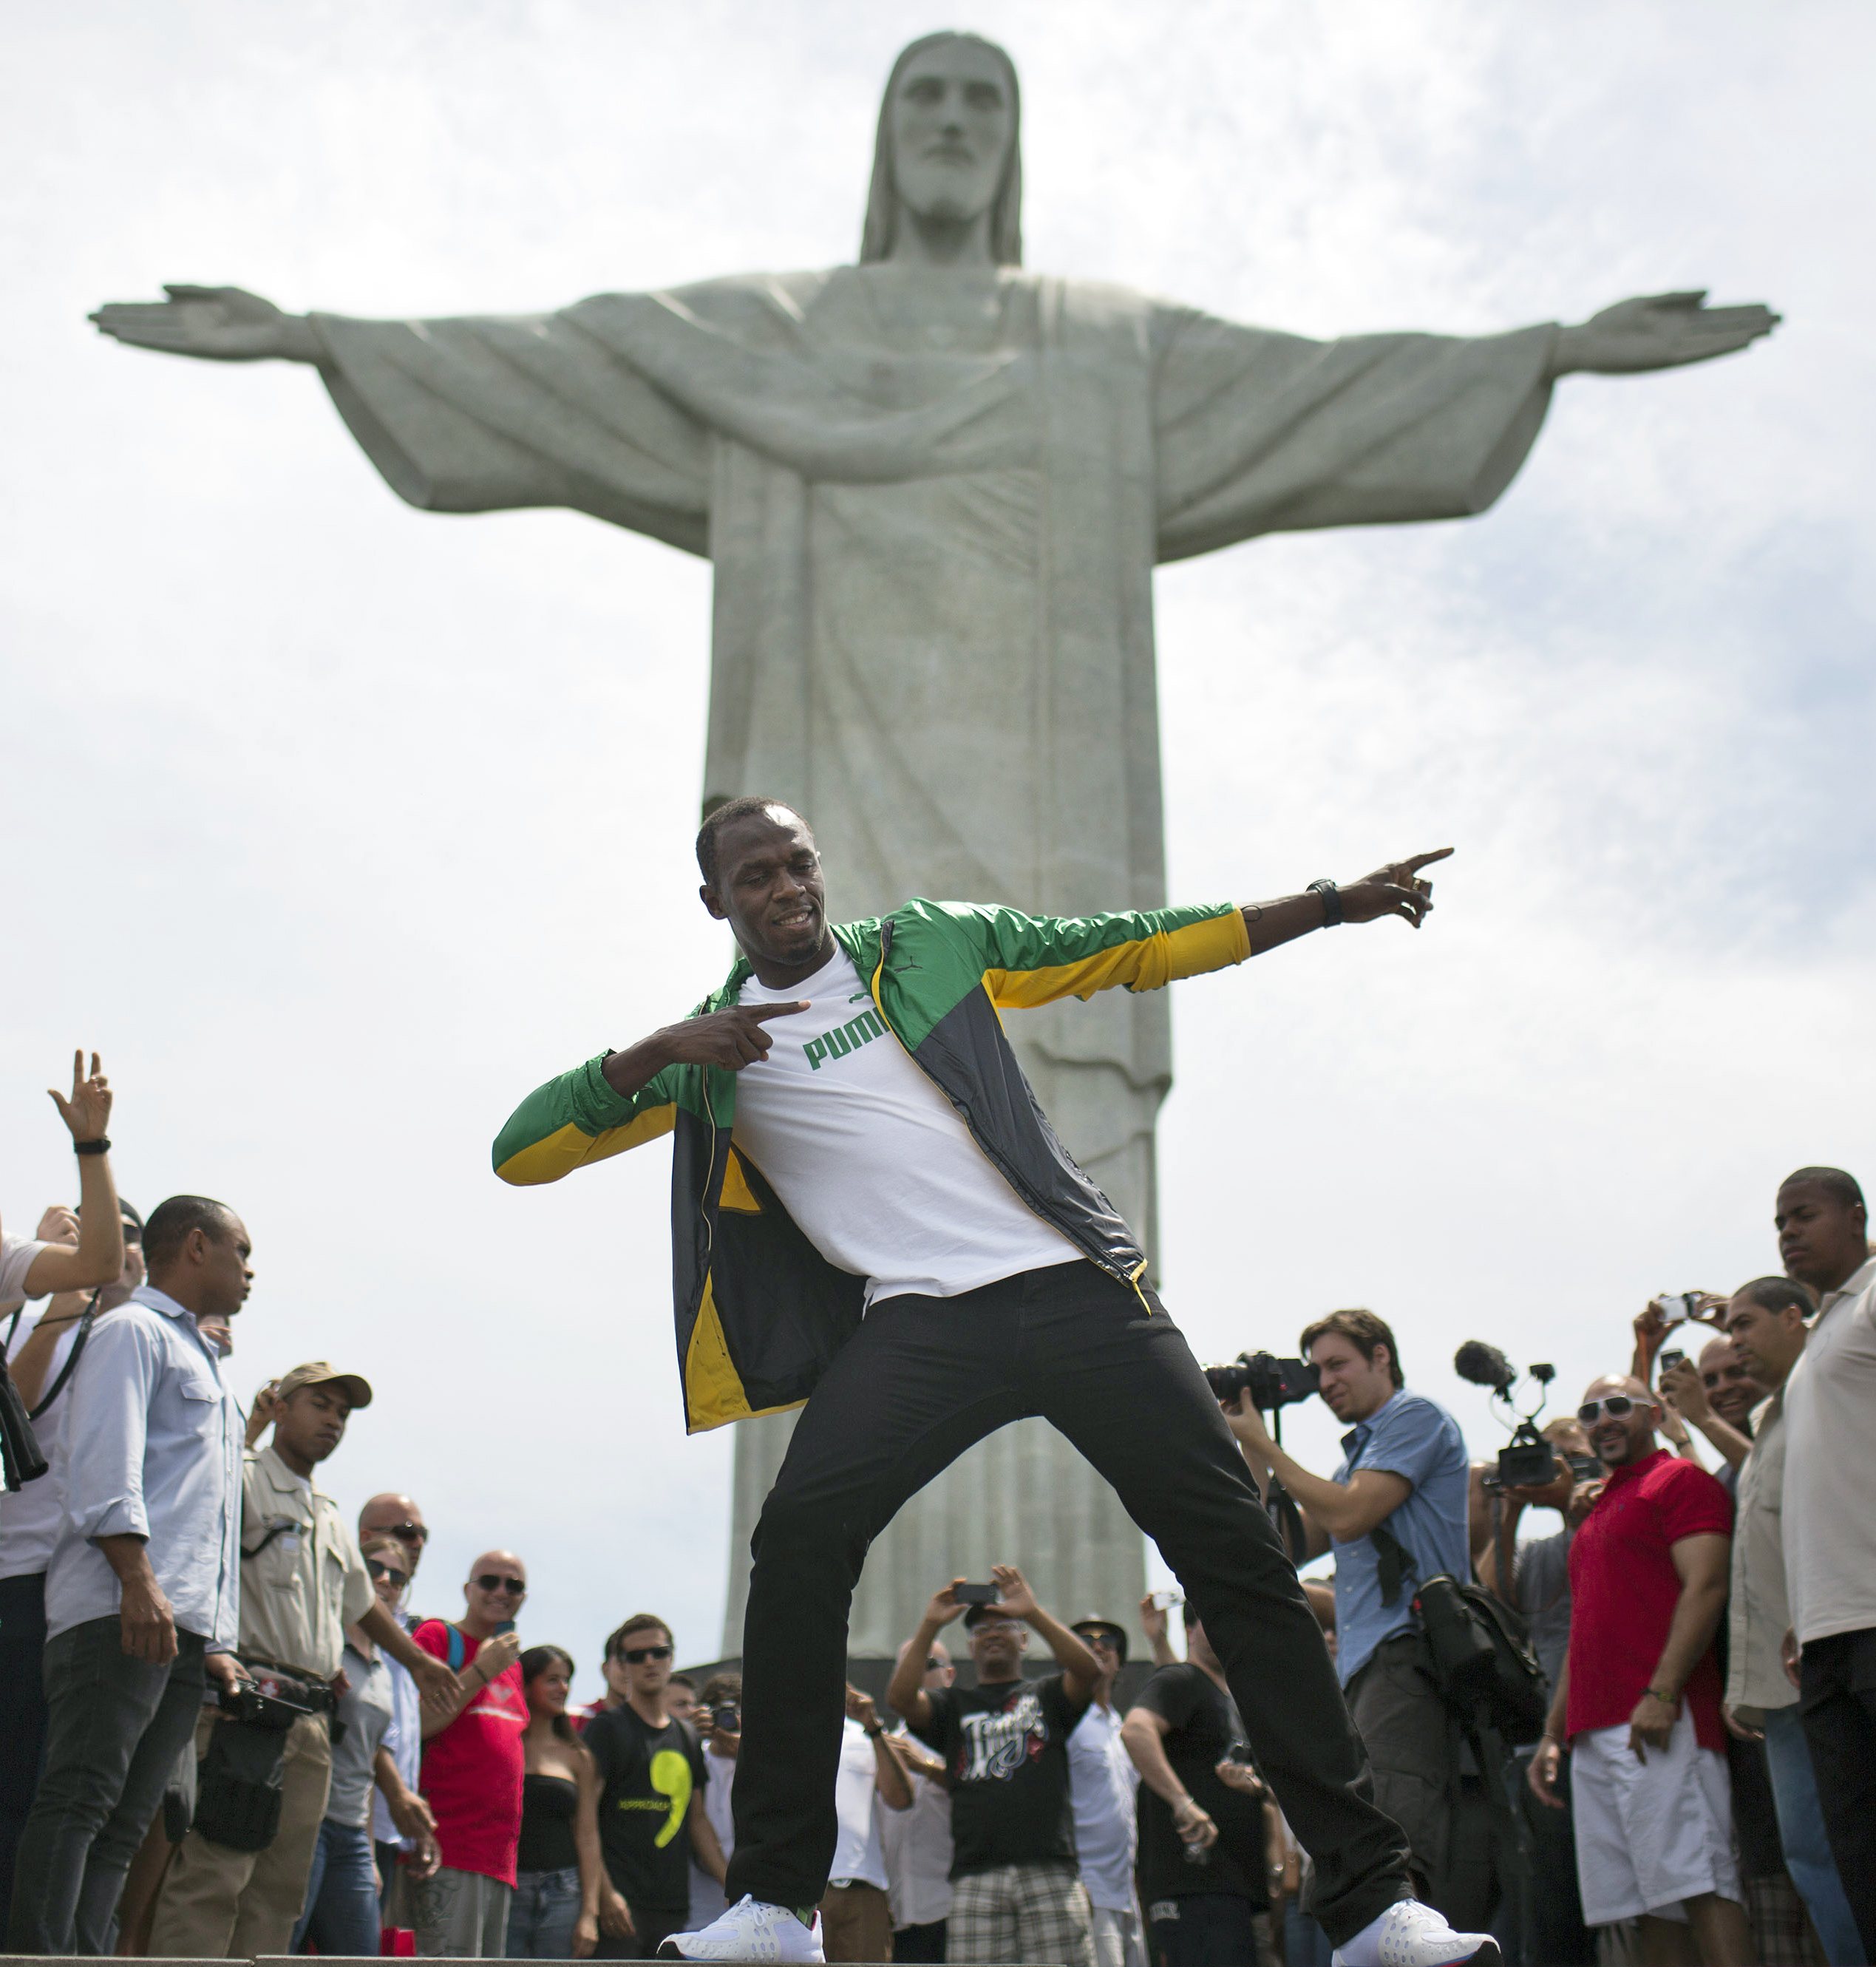 FILE - In this Oct. 23, 2012, file photo, Jamaica's Olympic gold medalist Usain Bolt poses for a photo for the benefit of the media during his visit to the Brazilian landmark Christ the Redeemer statue in Rio de Janeiro, Brazil. A year before the Rio Game